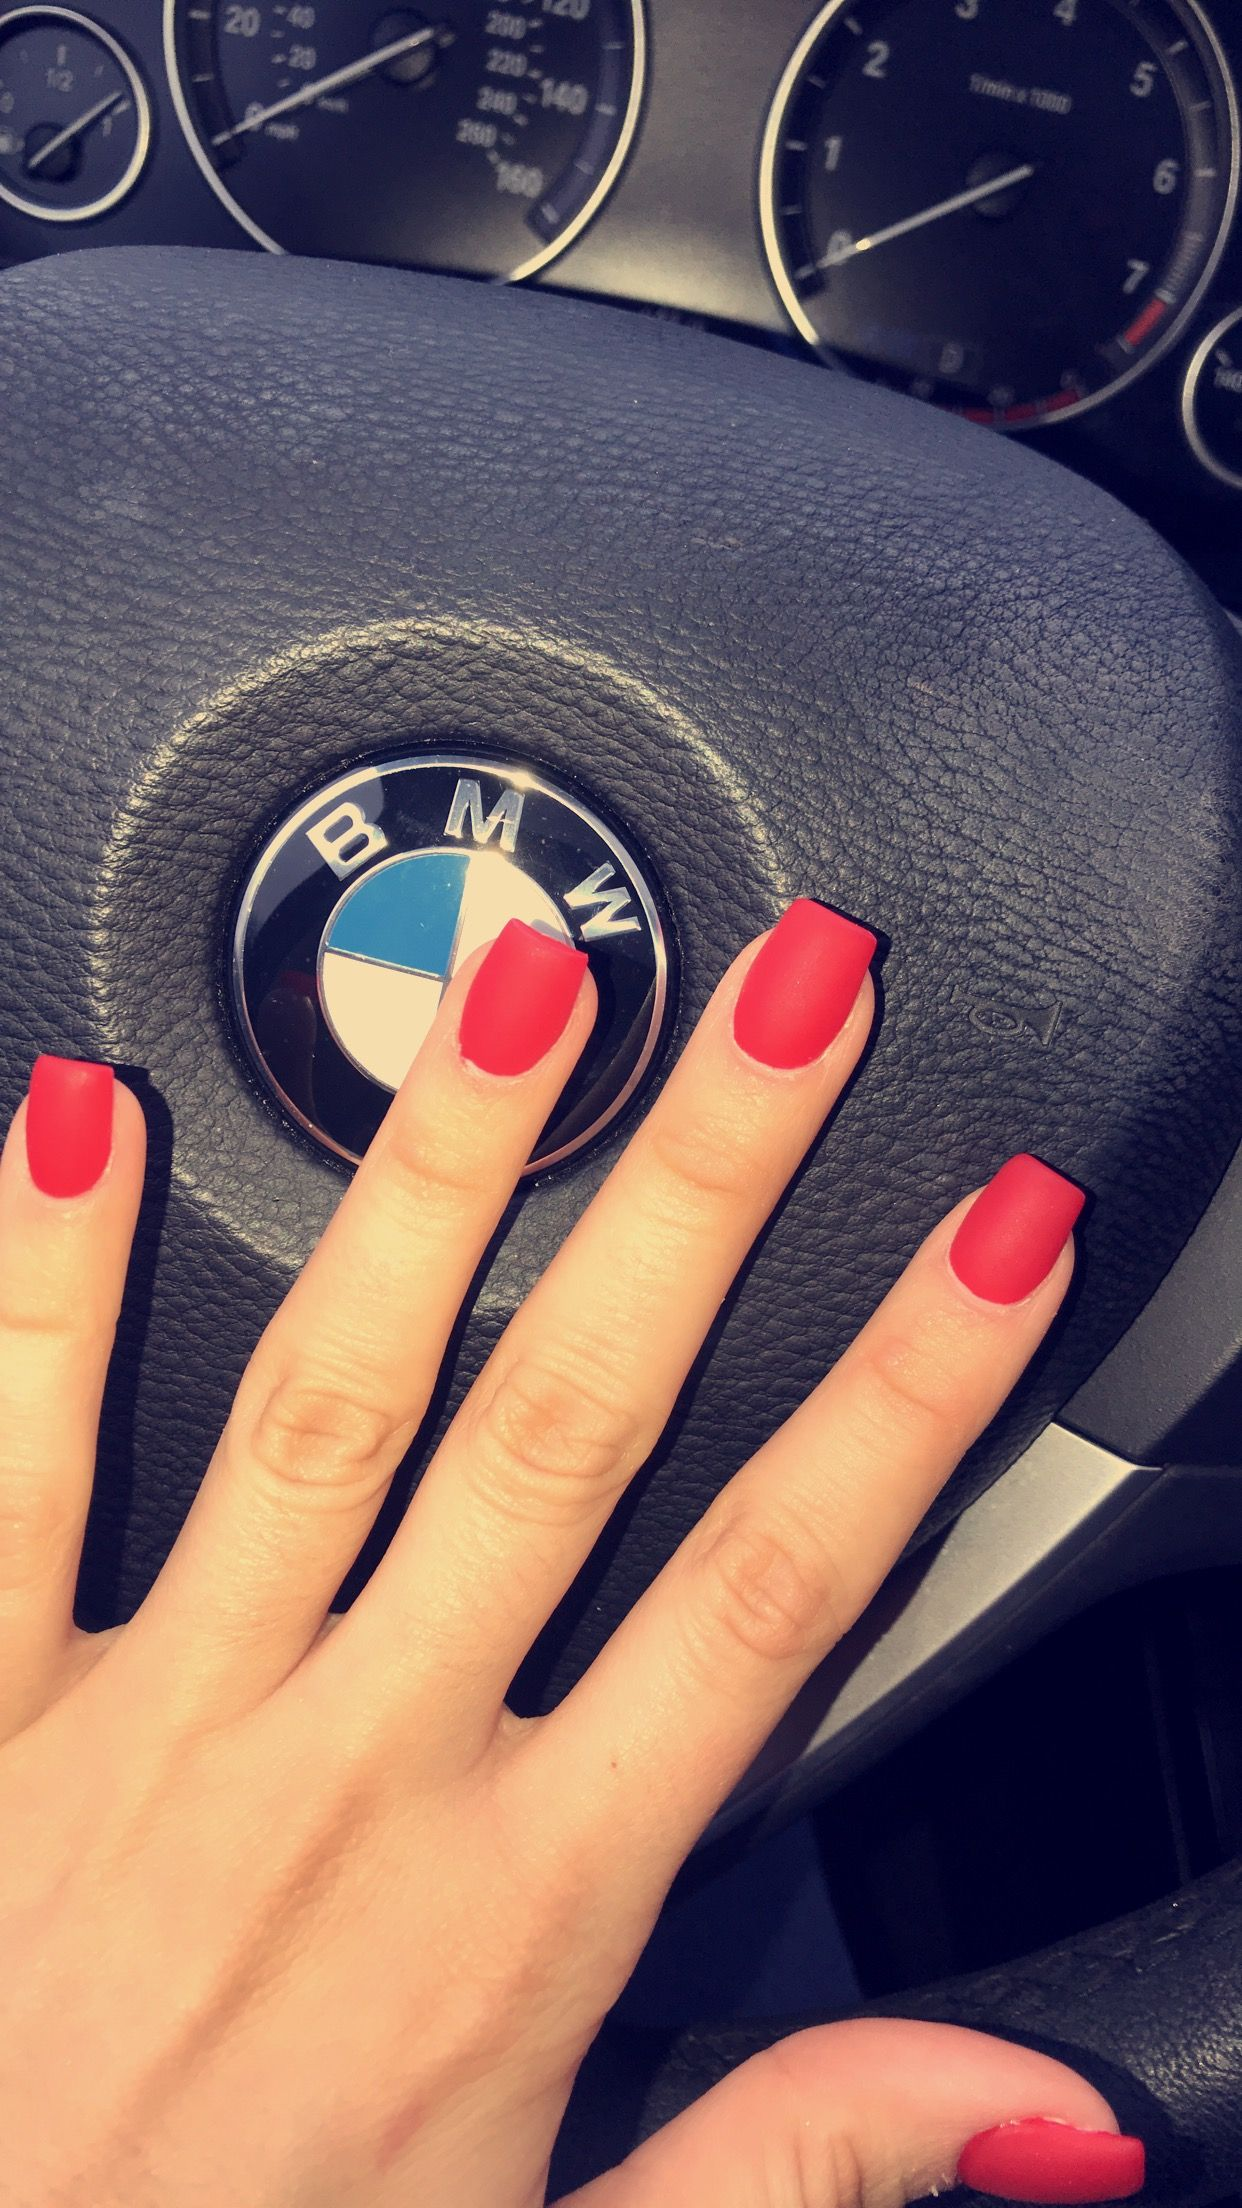 nails #matte #red #valentines #acrylic #square #bmw #apple   nailed ...